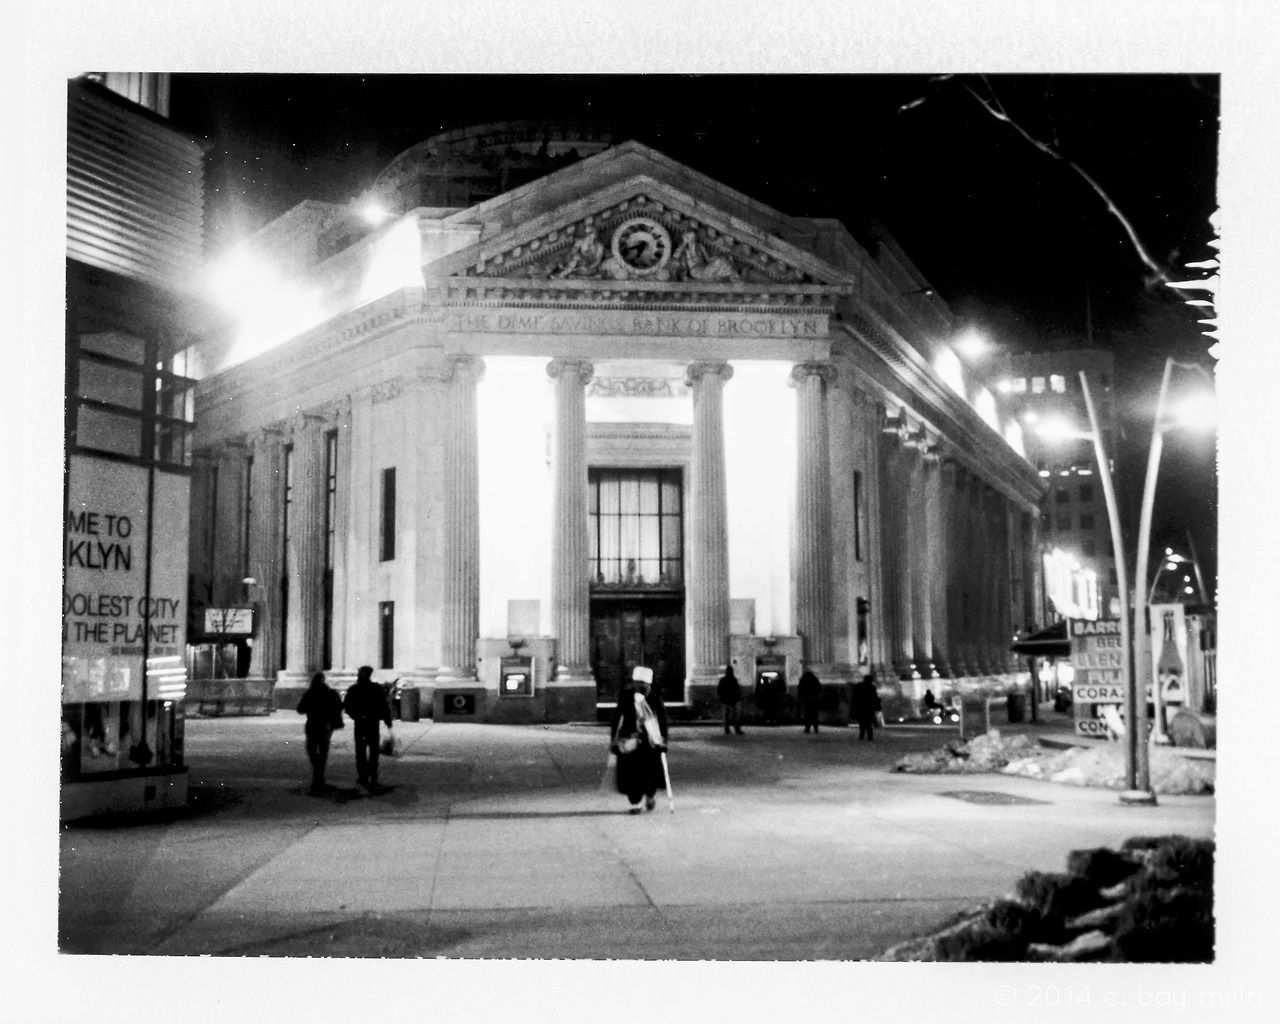 —-  nighttime develops a cool ice grip nearing 8°F, and a single figure on crutches shuffles across the square.  each person in the nearby shops and down the frigid alleyways clutch the collar of their coats, in an attempt to capture as much body-warmth as possible.  the dime savings bank of brooklyn looms o'er with a historical stoutness, and the developing windstorm skirts the edges.  —-